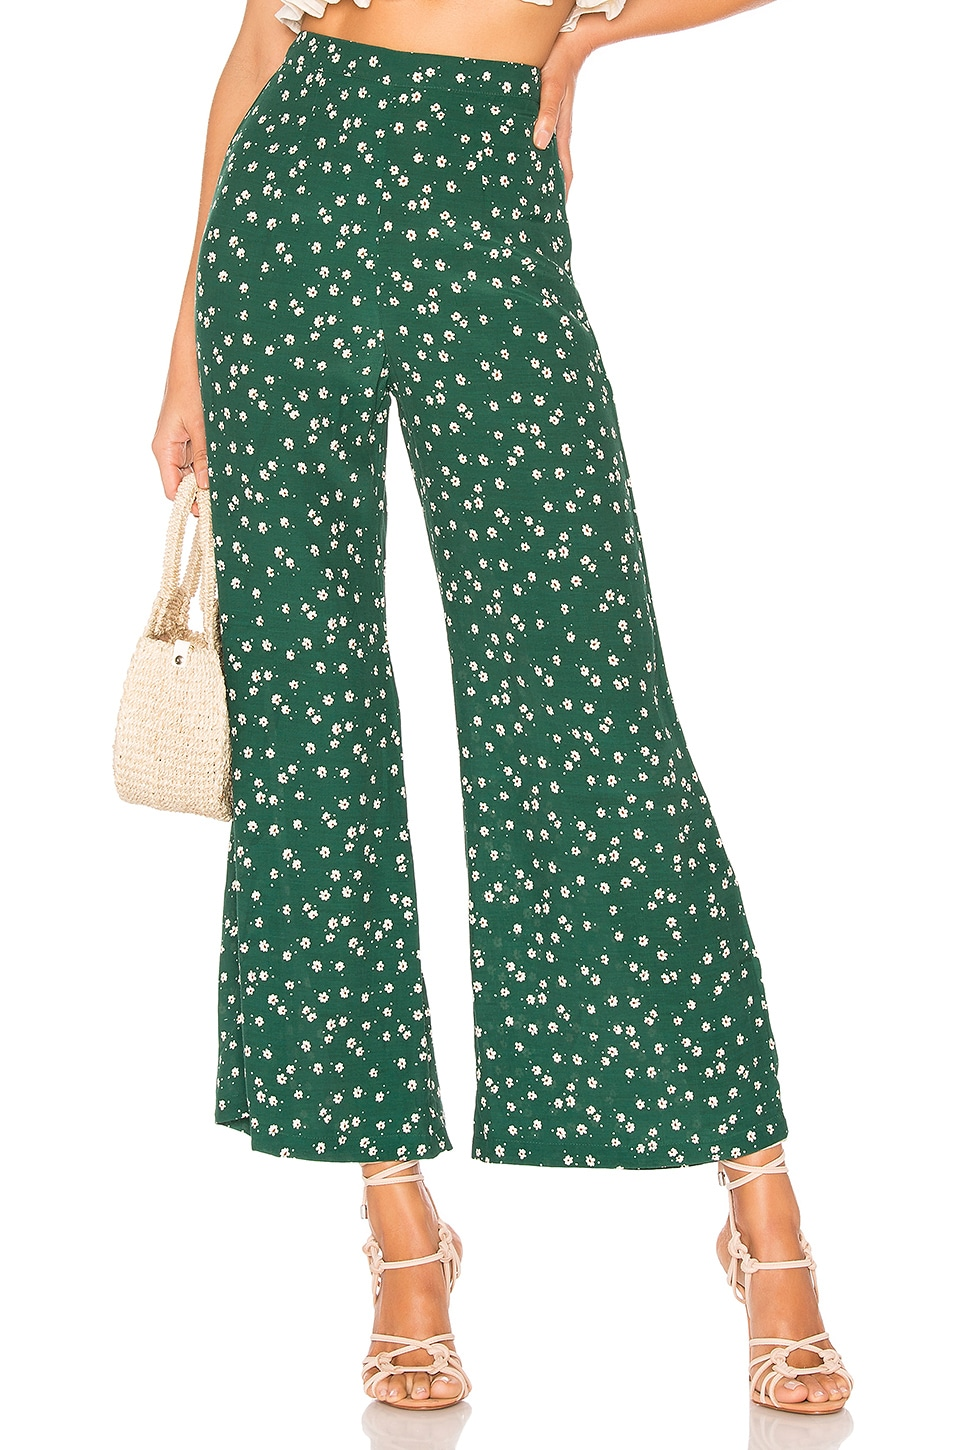 FAITHFULL THE BRAND Gabrielle Pant in Green Betina Floral